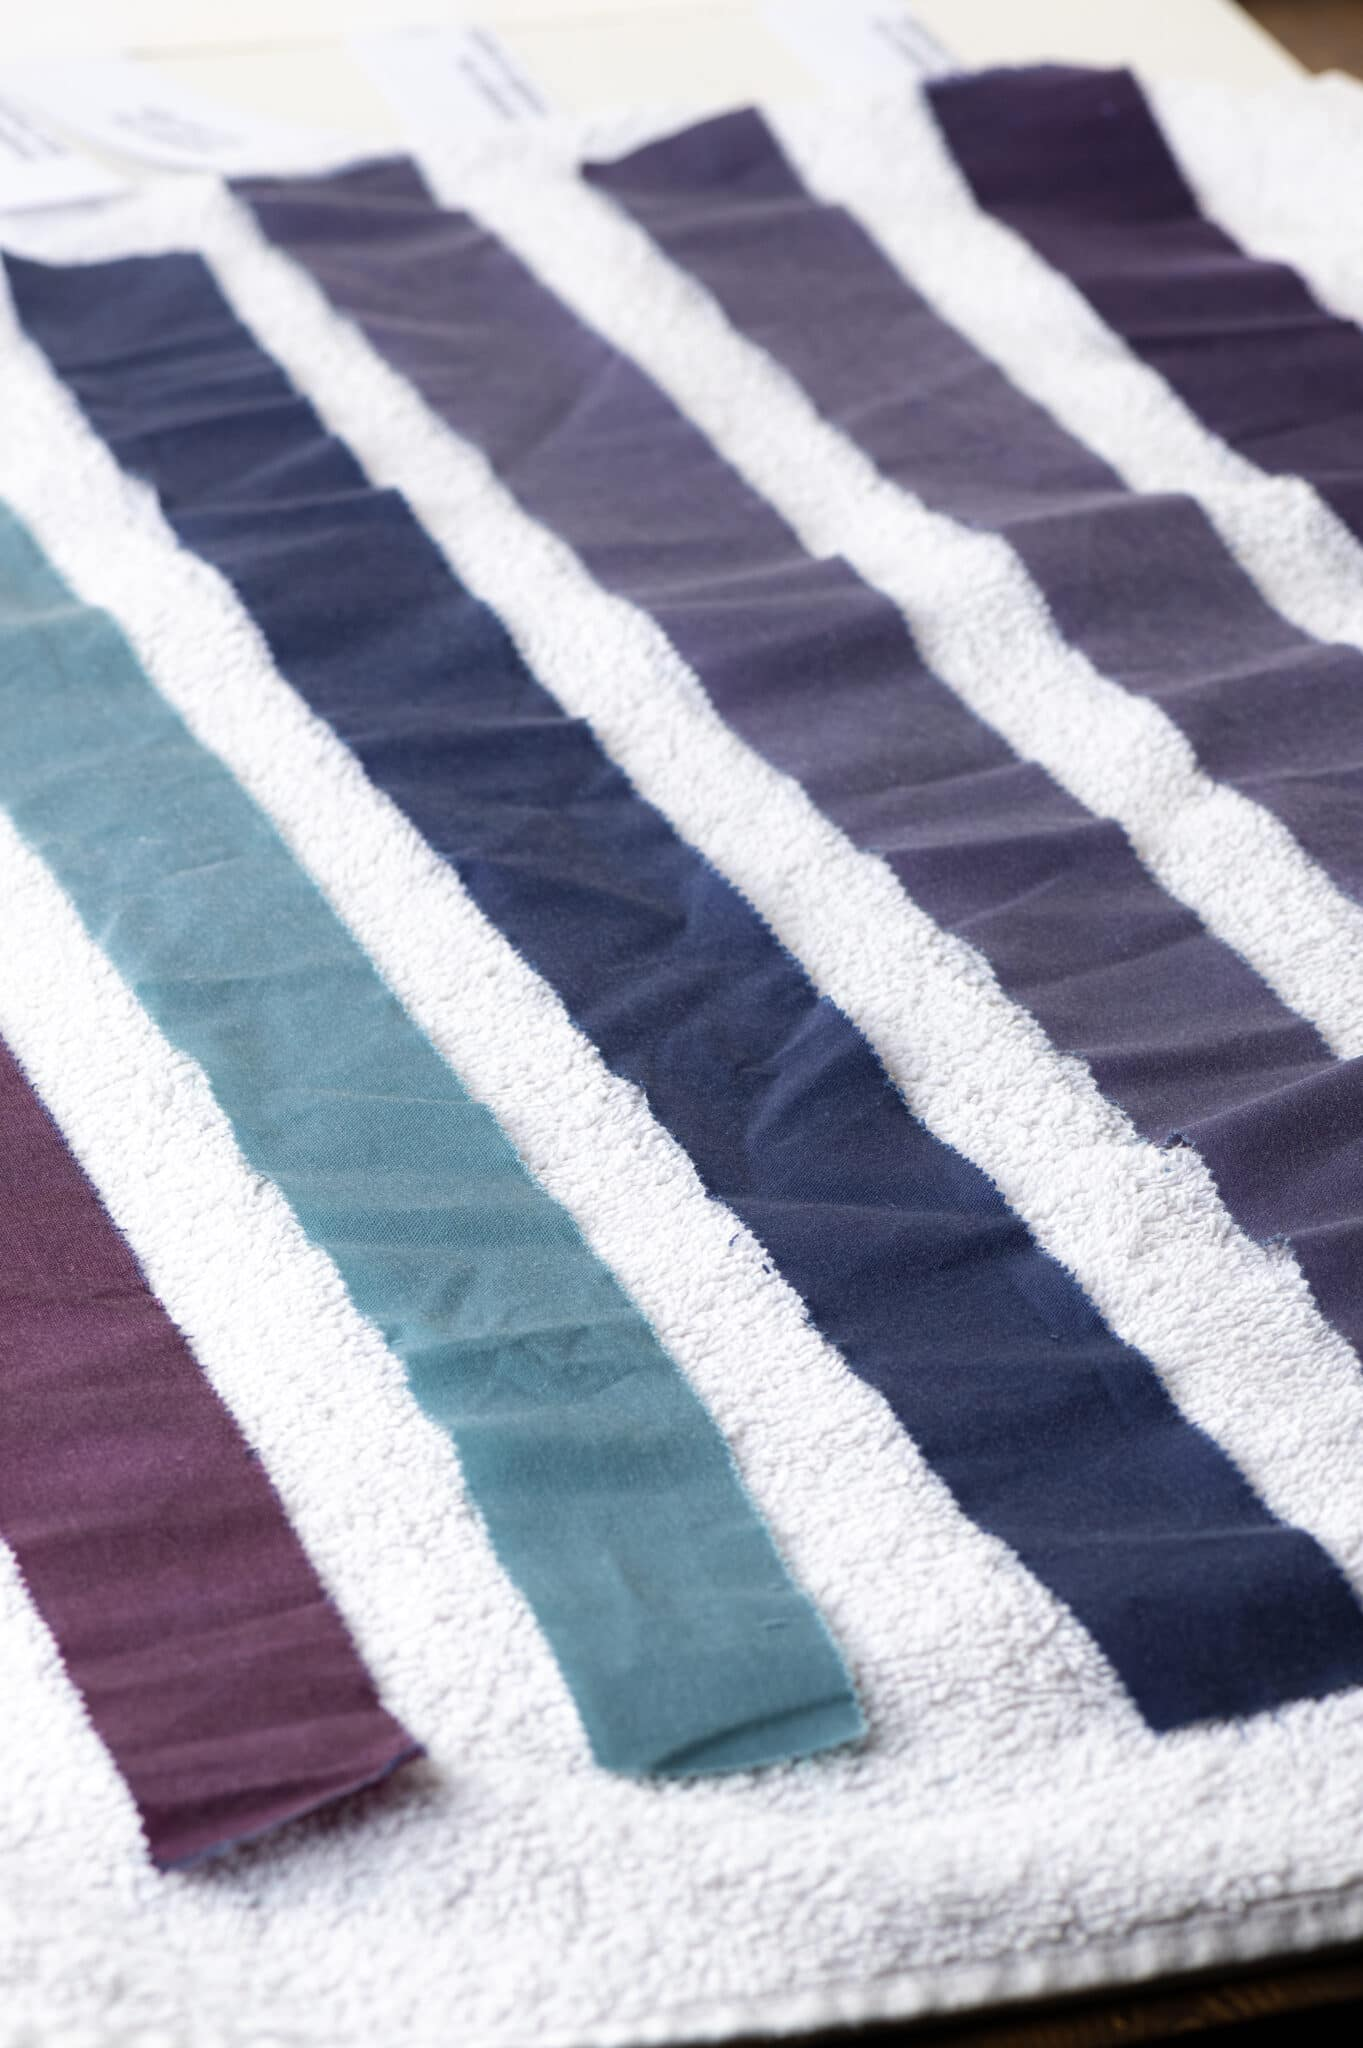 Strips of 100% cotton that have been coloured using a natural dye made from grapes. The colour is rich and vibrant, showing that natural fabrics take dyes very well.